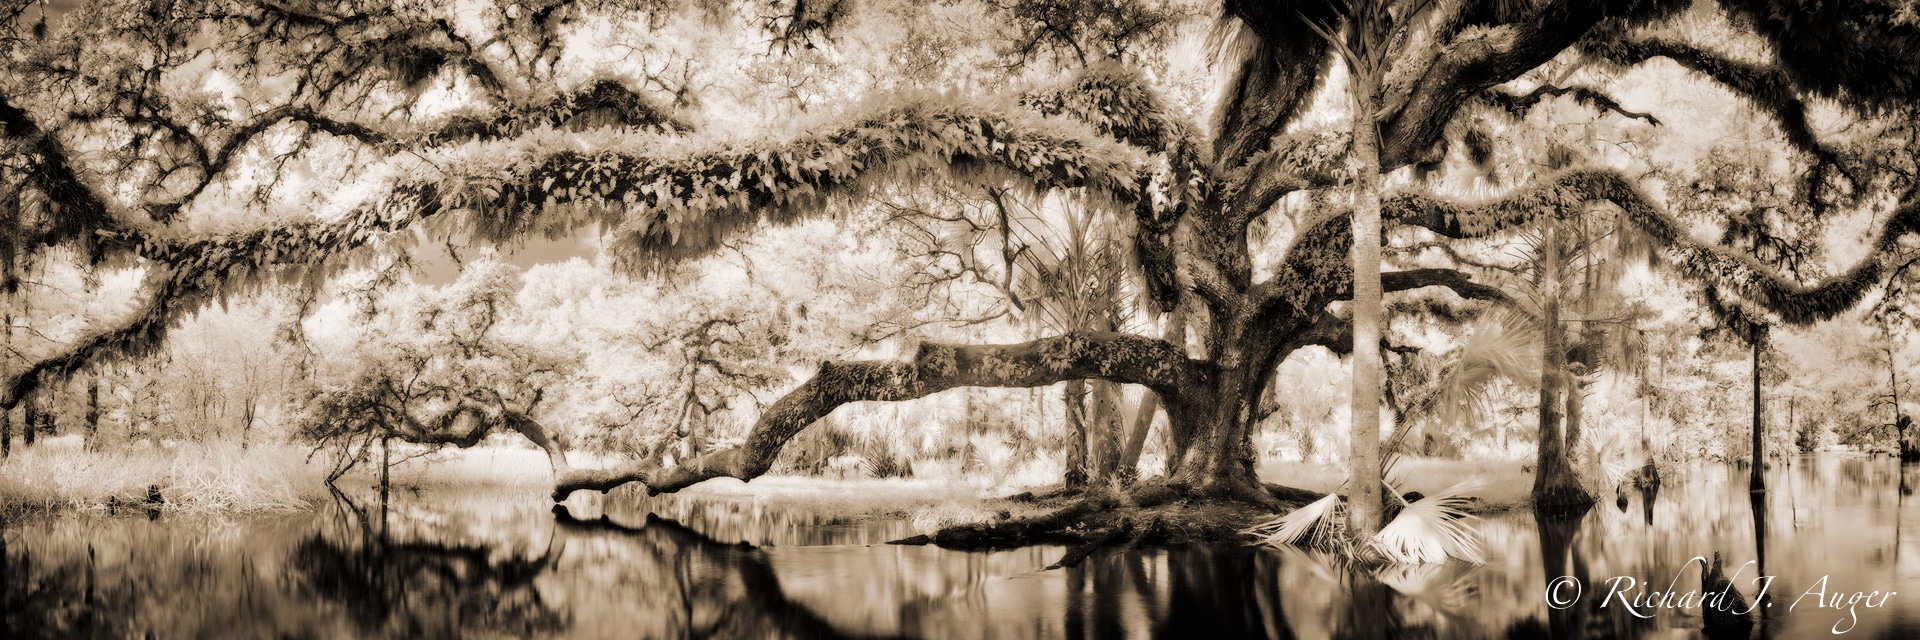 Fisheating Creek, Florida, Oak Tree, Water, Swamp, haunted, sepia, monochrome, landscape, photographer